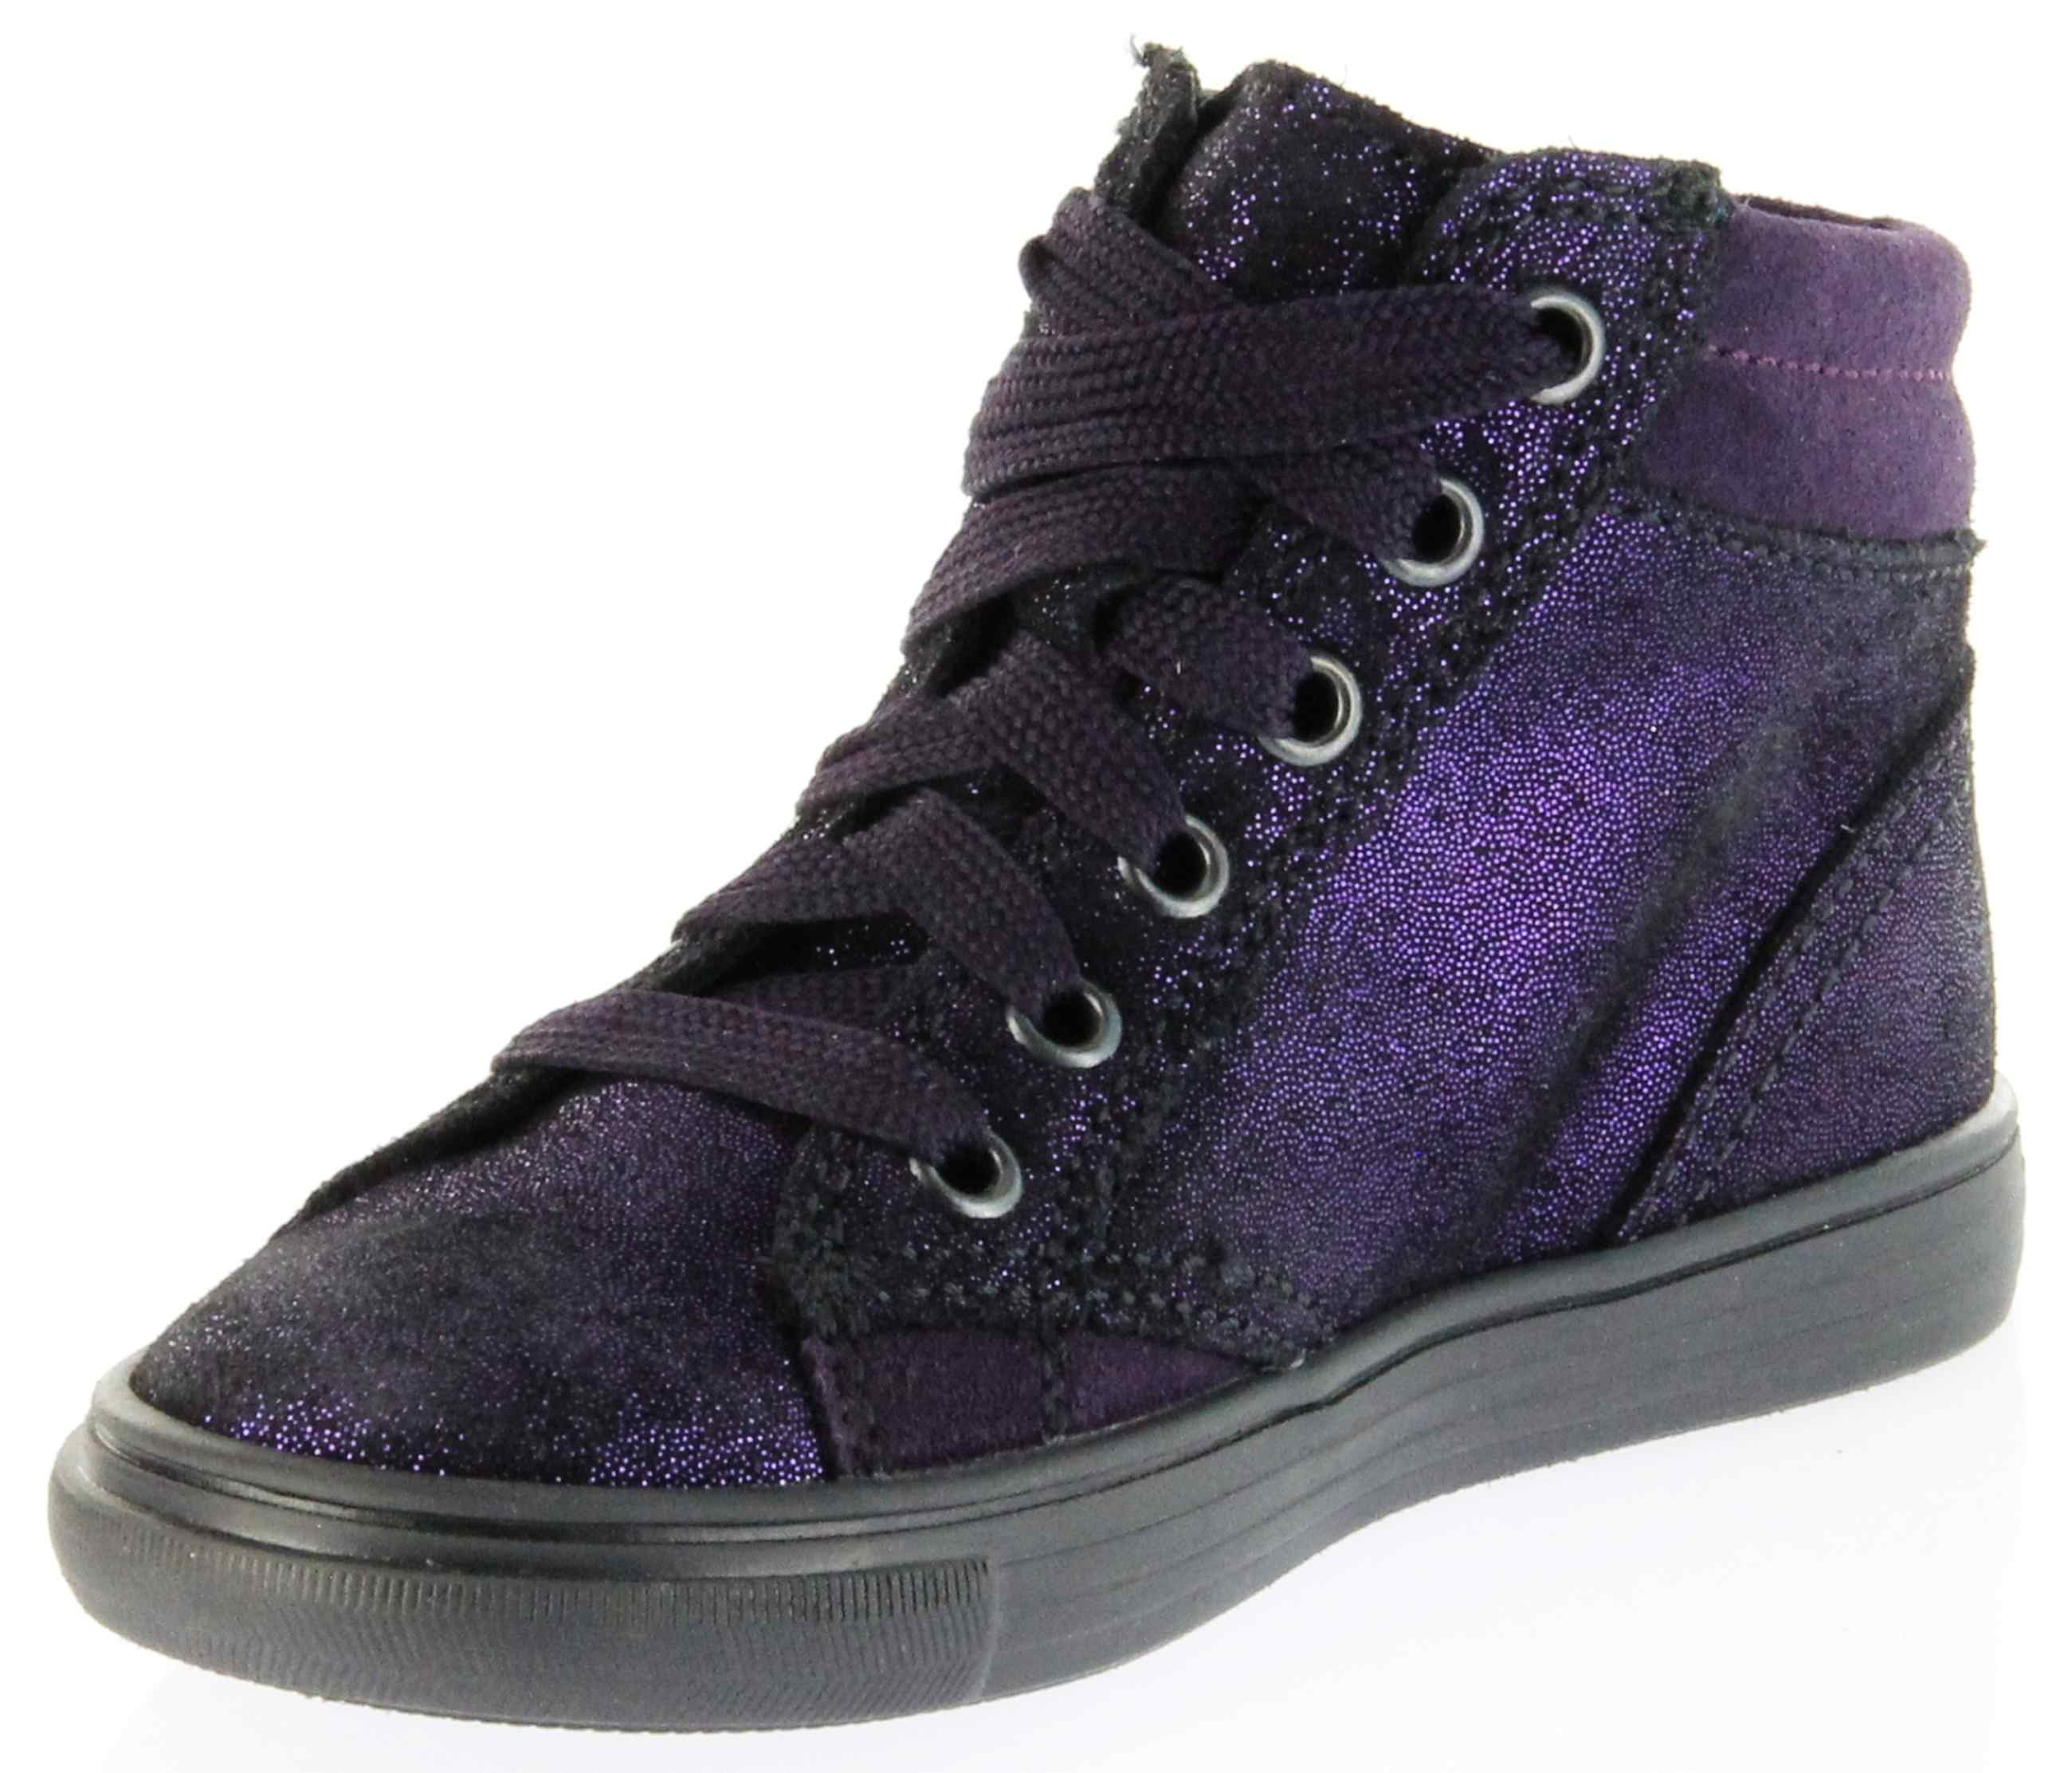 richter kinder halbschuhe sneaker violett velourleder. Black Bedroom Furniture Sets. Home Design Ideas